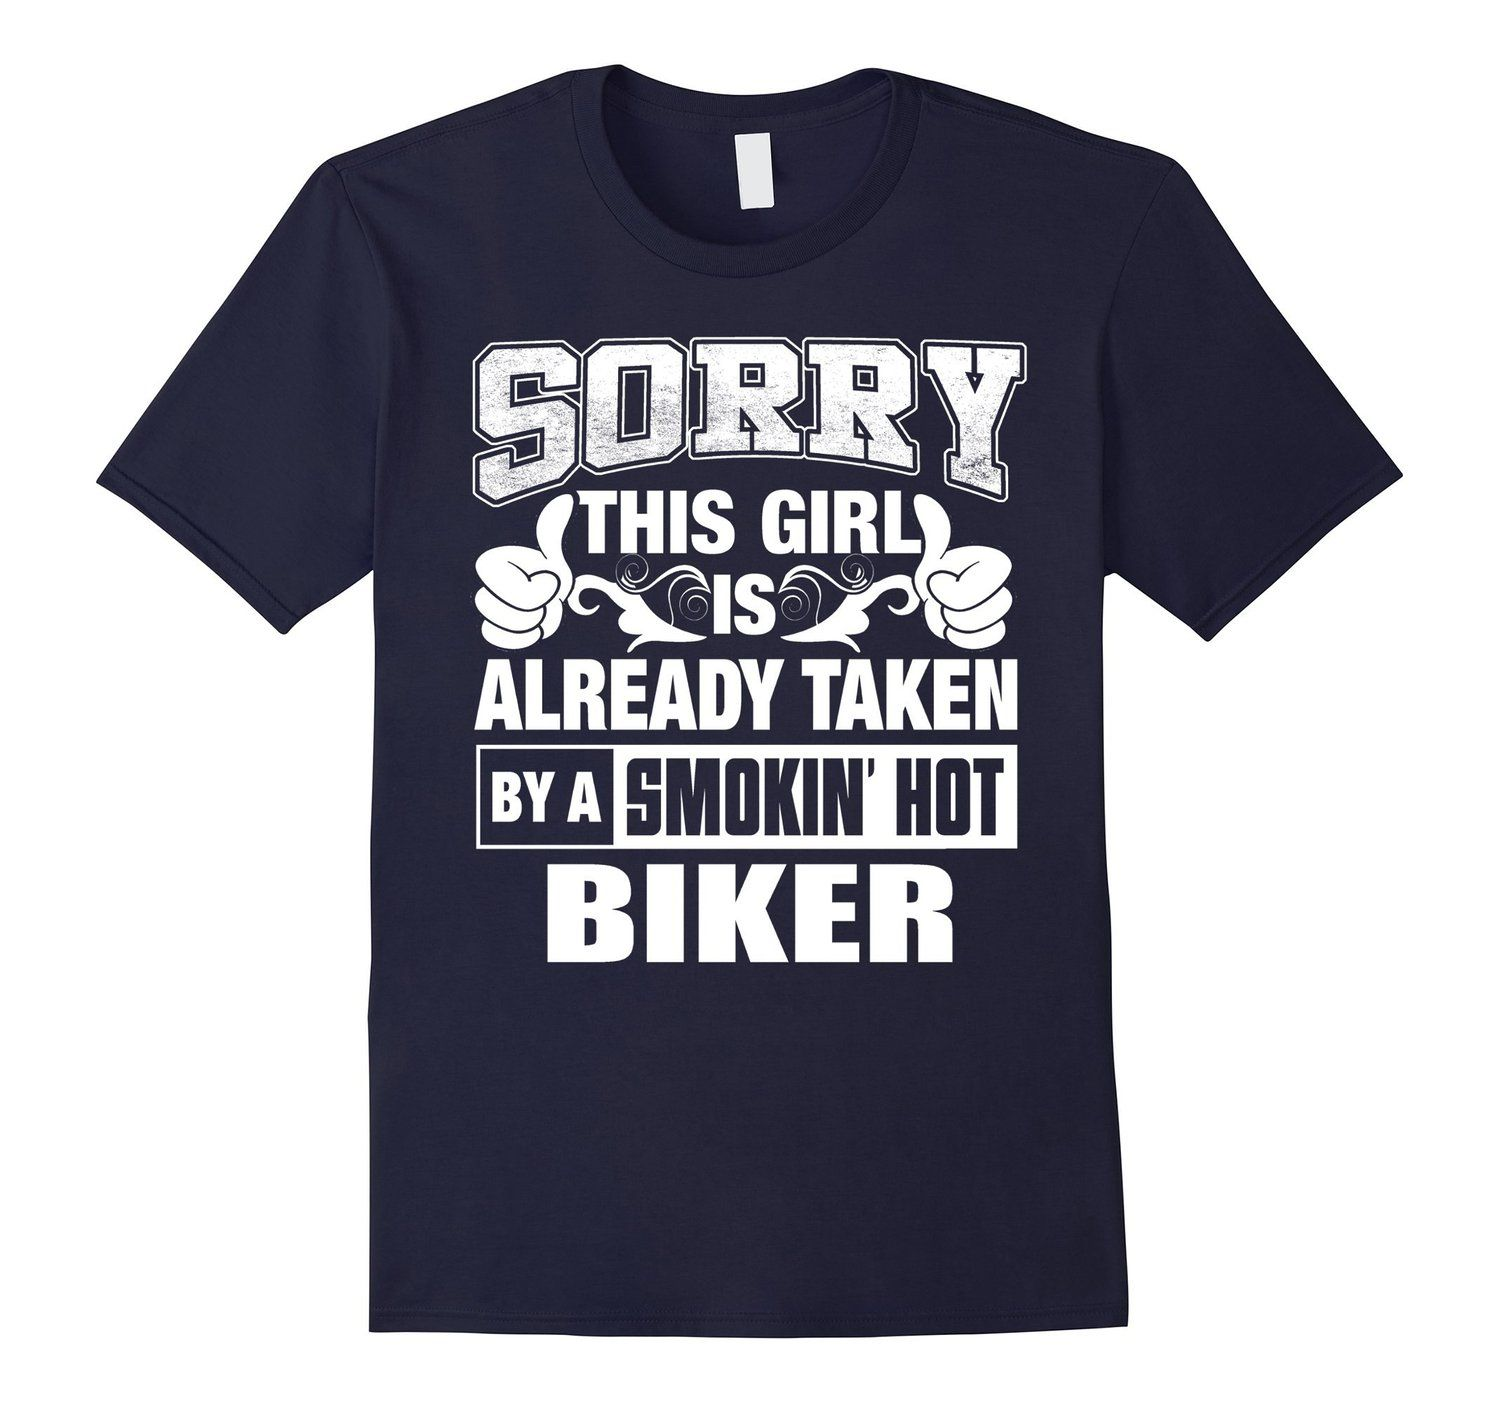 Biker Shirt - Cool Shirt for Biker Girlfriend, Wife Or Lover >> Click Visit Site to get yours nice Shirts & Hoodies - Only $19 - $21. #tshirts, #photo, #image, #hoodie, #shirt, #xmas, #christmas, #gift, #presents, #name, #name_tshirt, #name_shirt, #name_hoodie, #job, #job_tshirt, #job_shirt, #job_hoodie #giftfordad